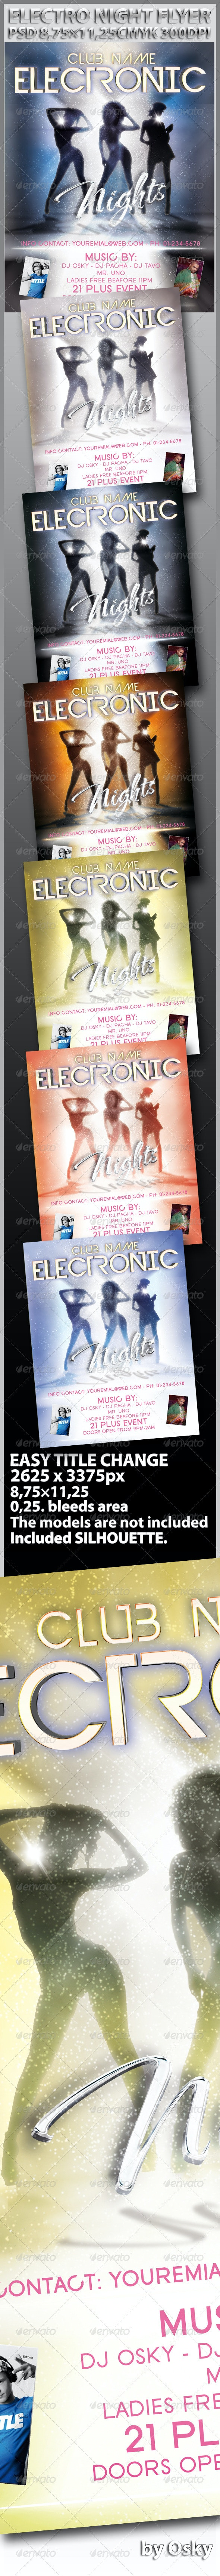 Electronic Nights Flyer - Clubs & Parties Events